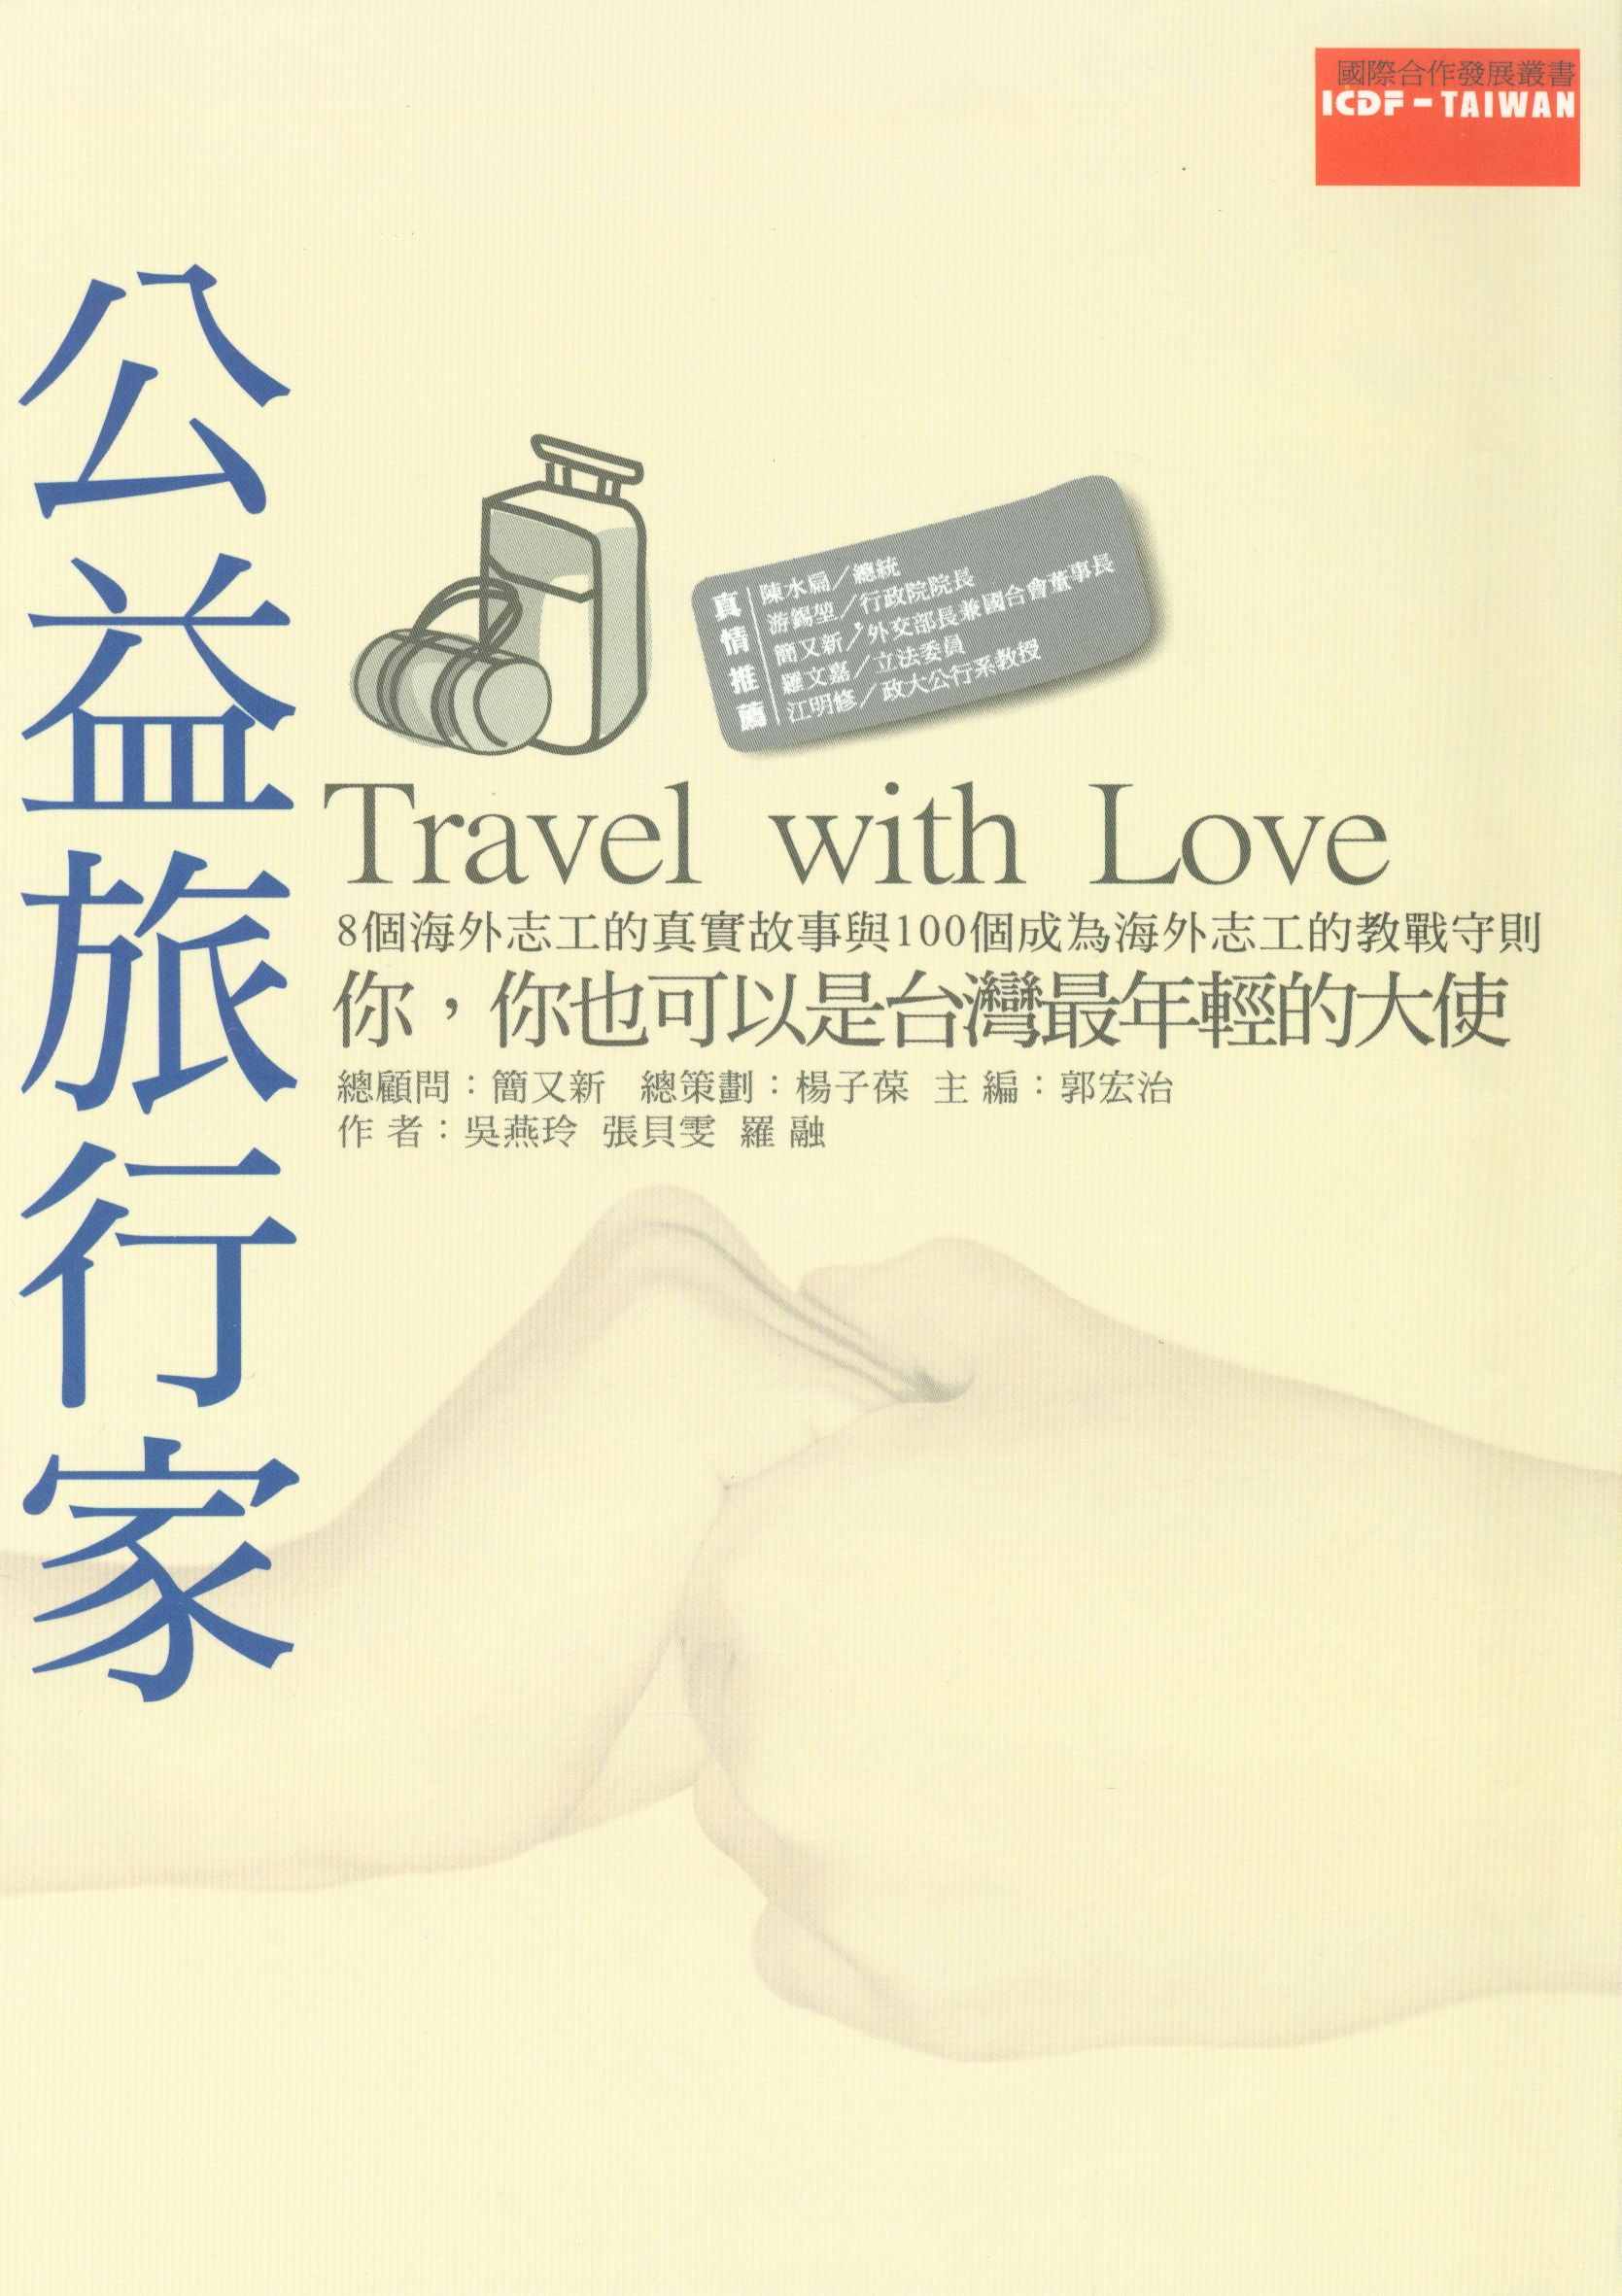 Travel with Love